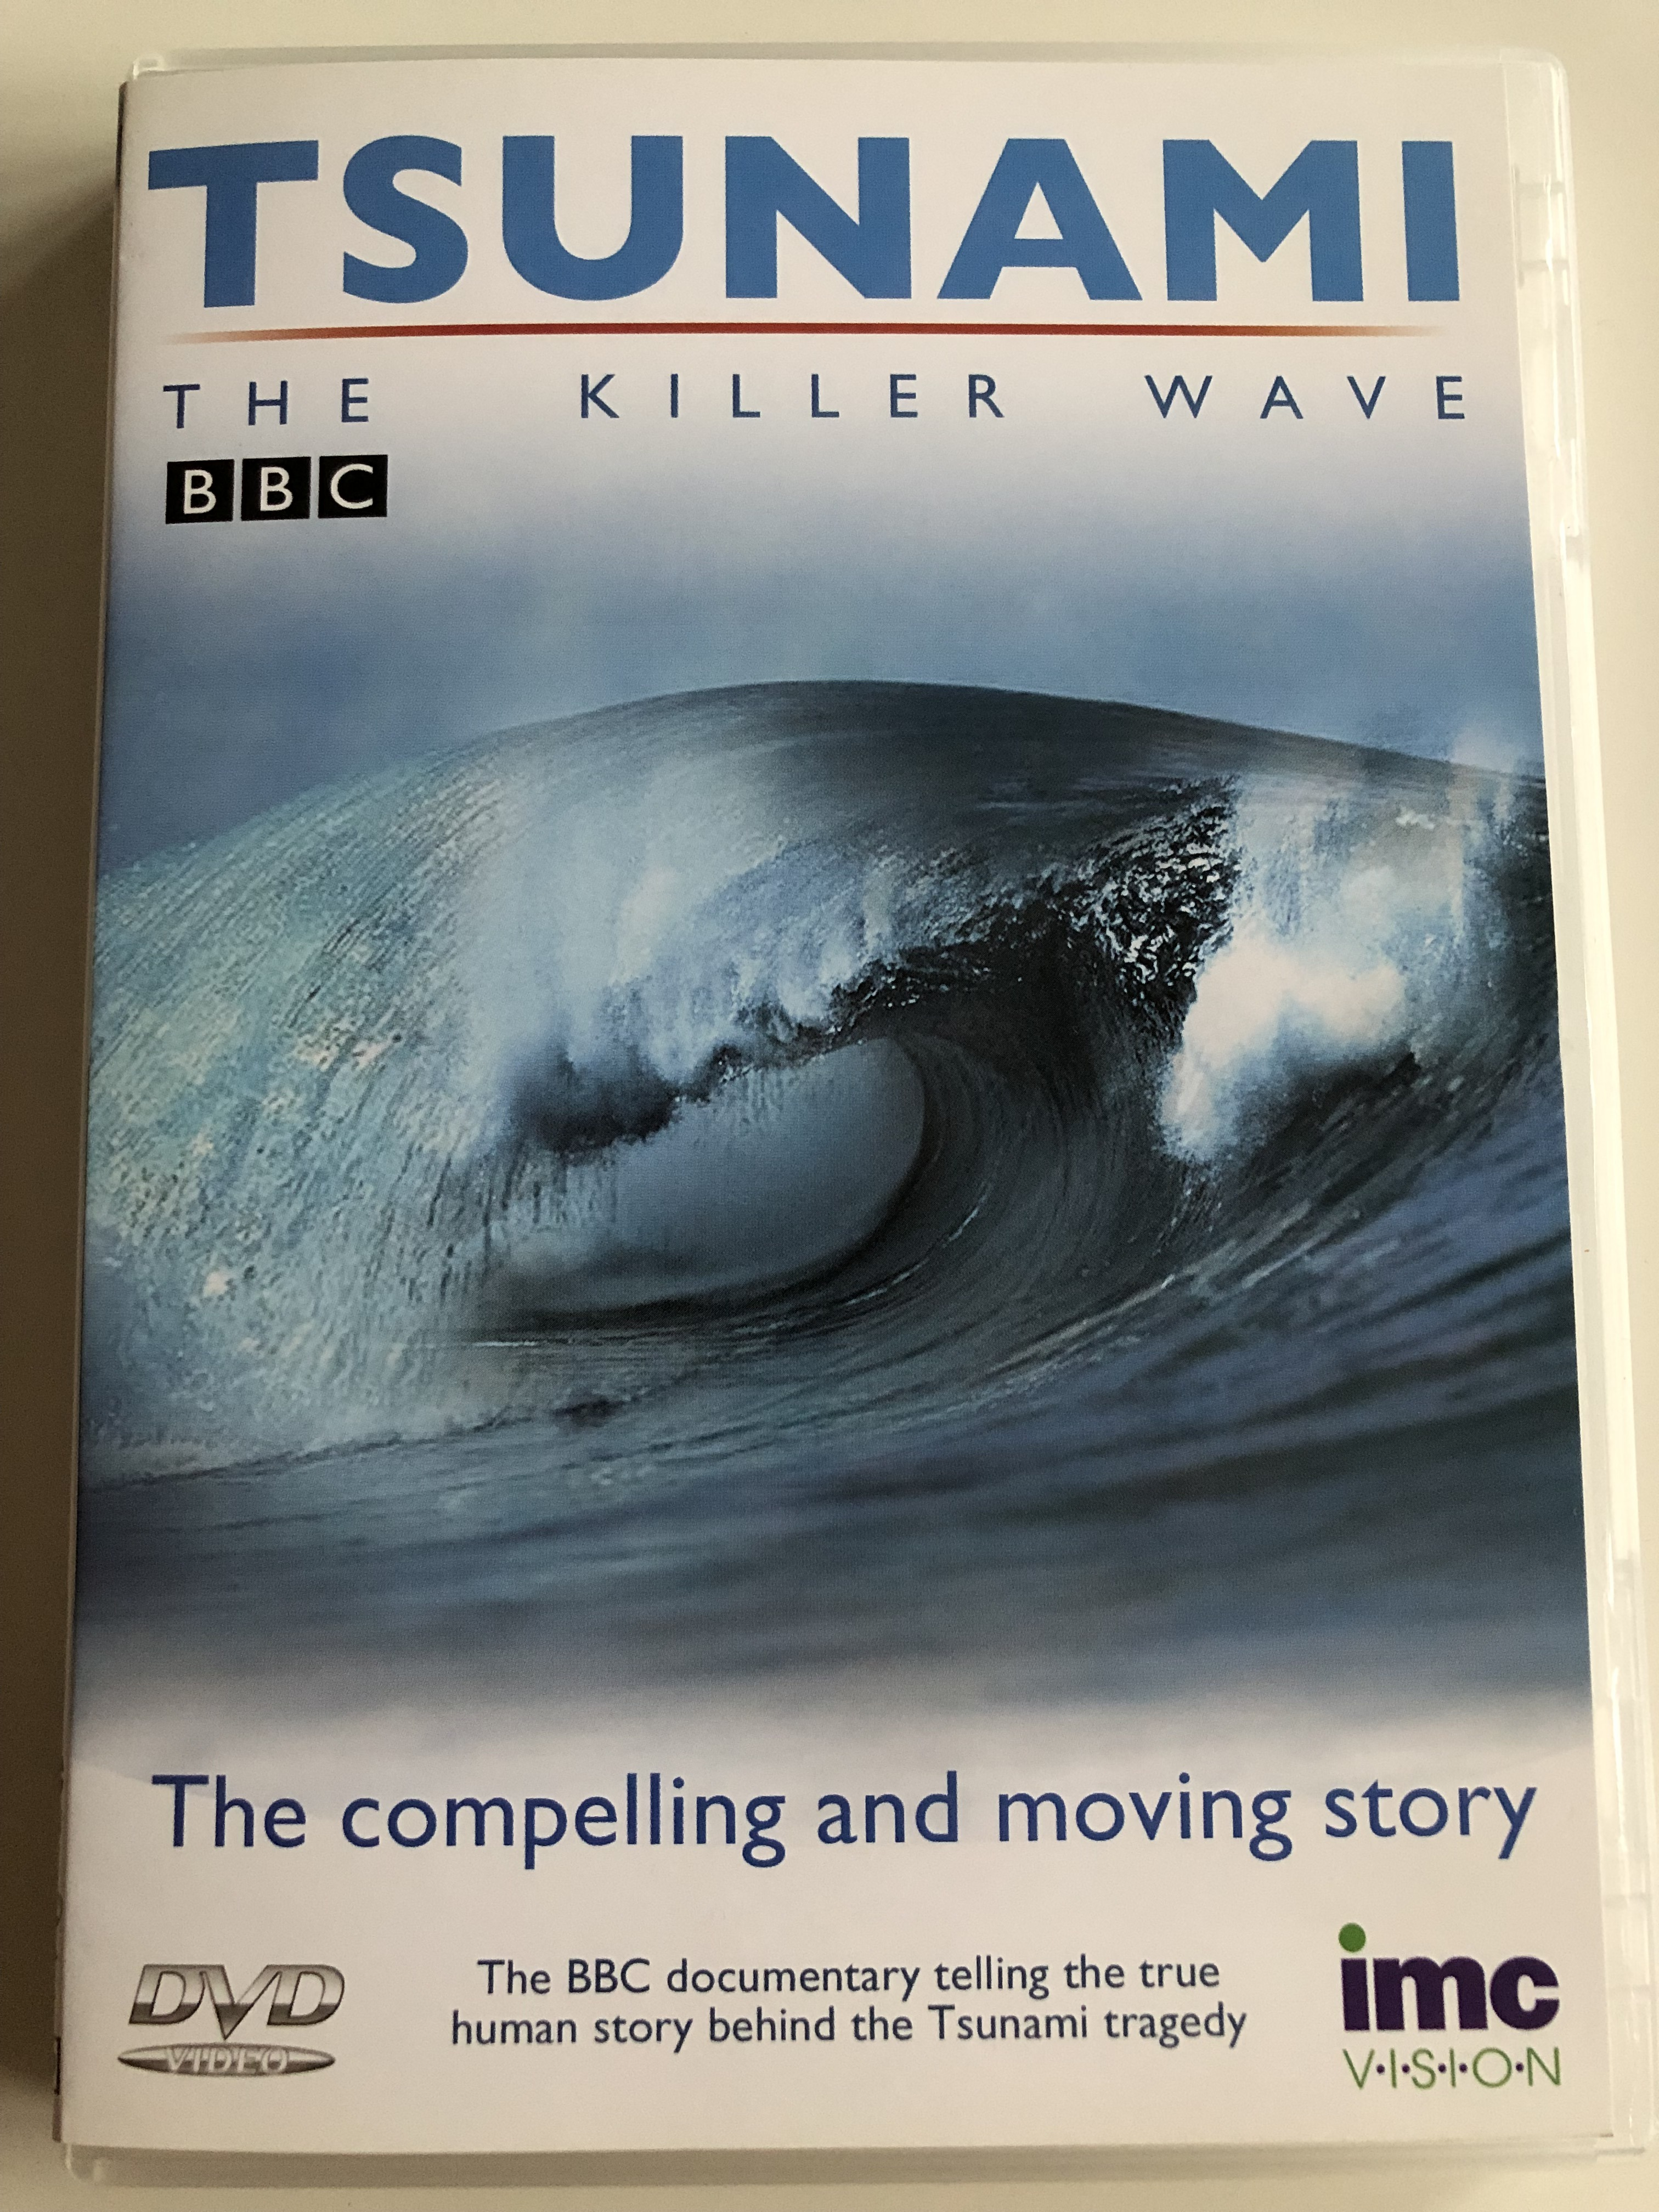 tsunami-the-killer-wave-bbc-dvd-2005-executive-producer-paul-woolwich-a-compelling-and-moving-documentary-about-the-2004-asian-tsunami-disaster-reported-by-jeremy-bowen-1-.jpg